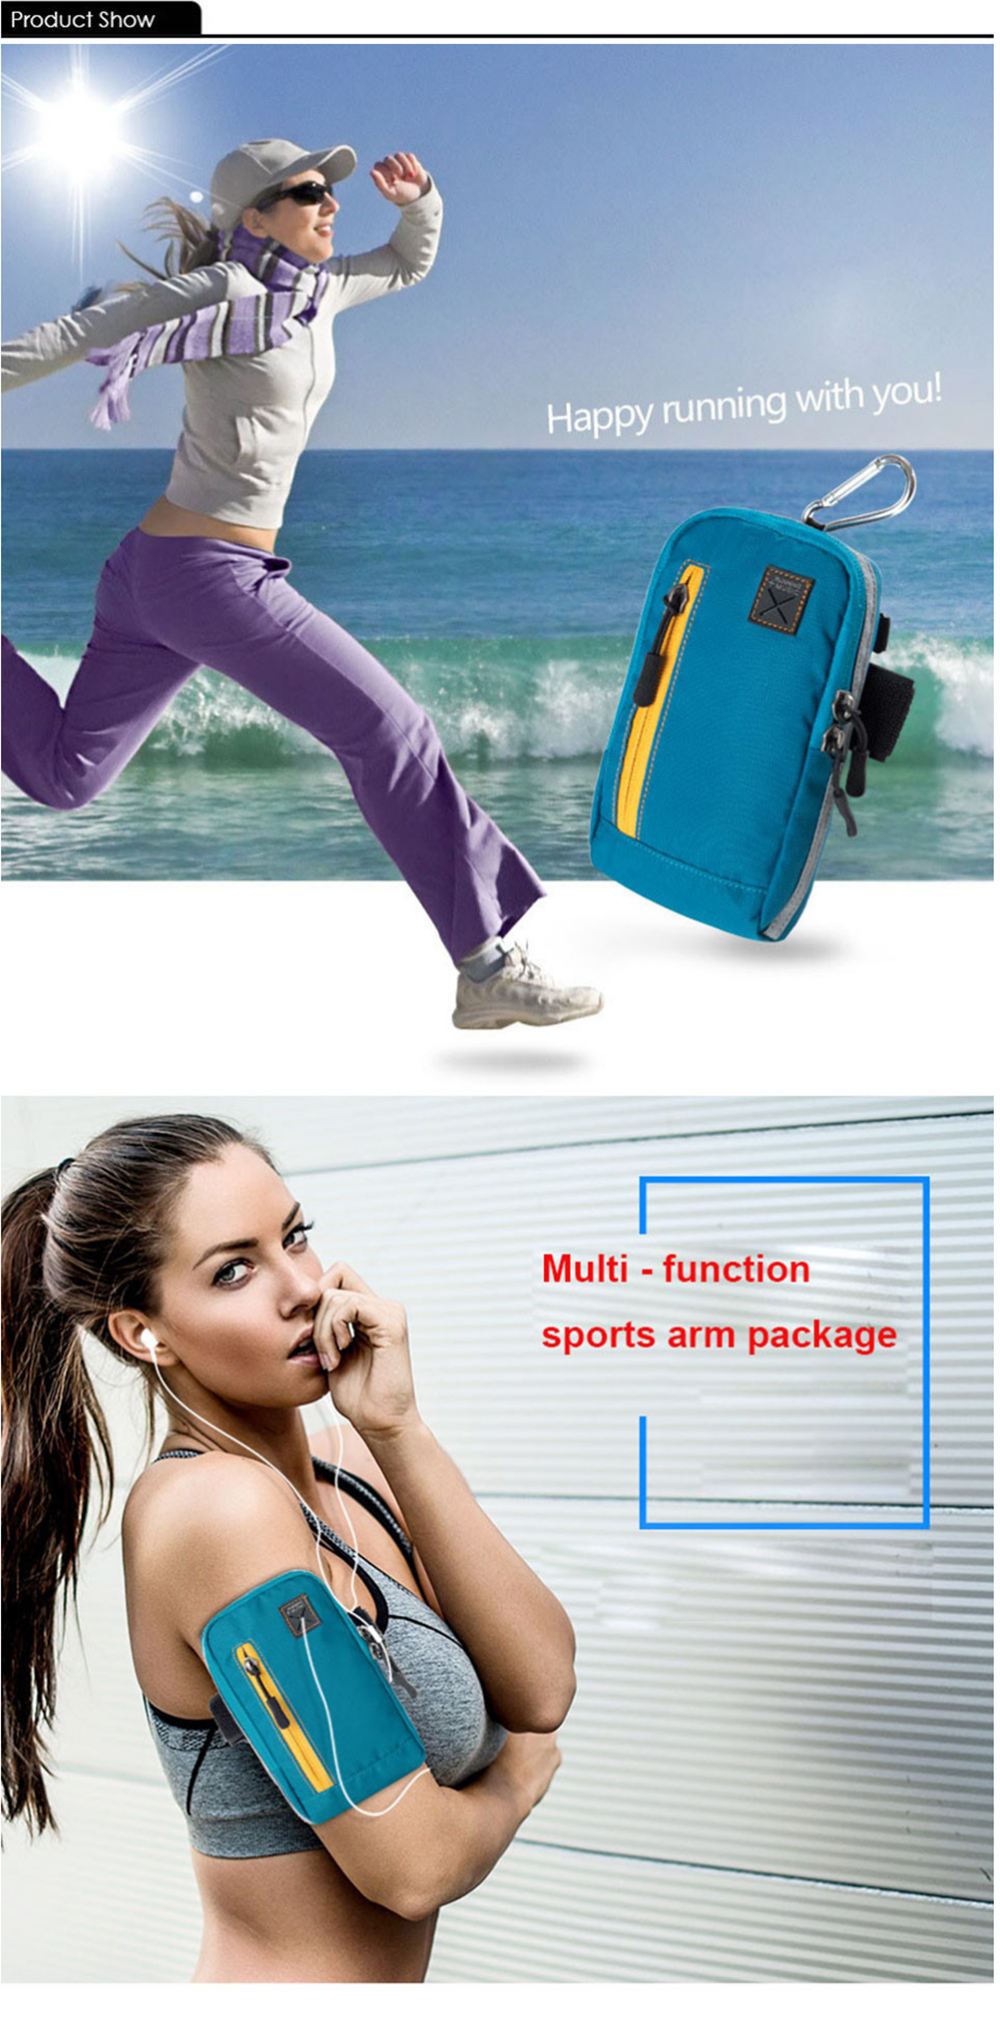 AONIJIE-Arm-Bags-For-Outdoor-Running-Coins-Purse-S_01